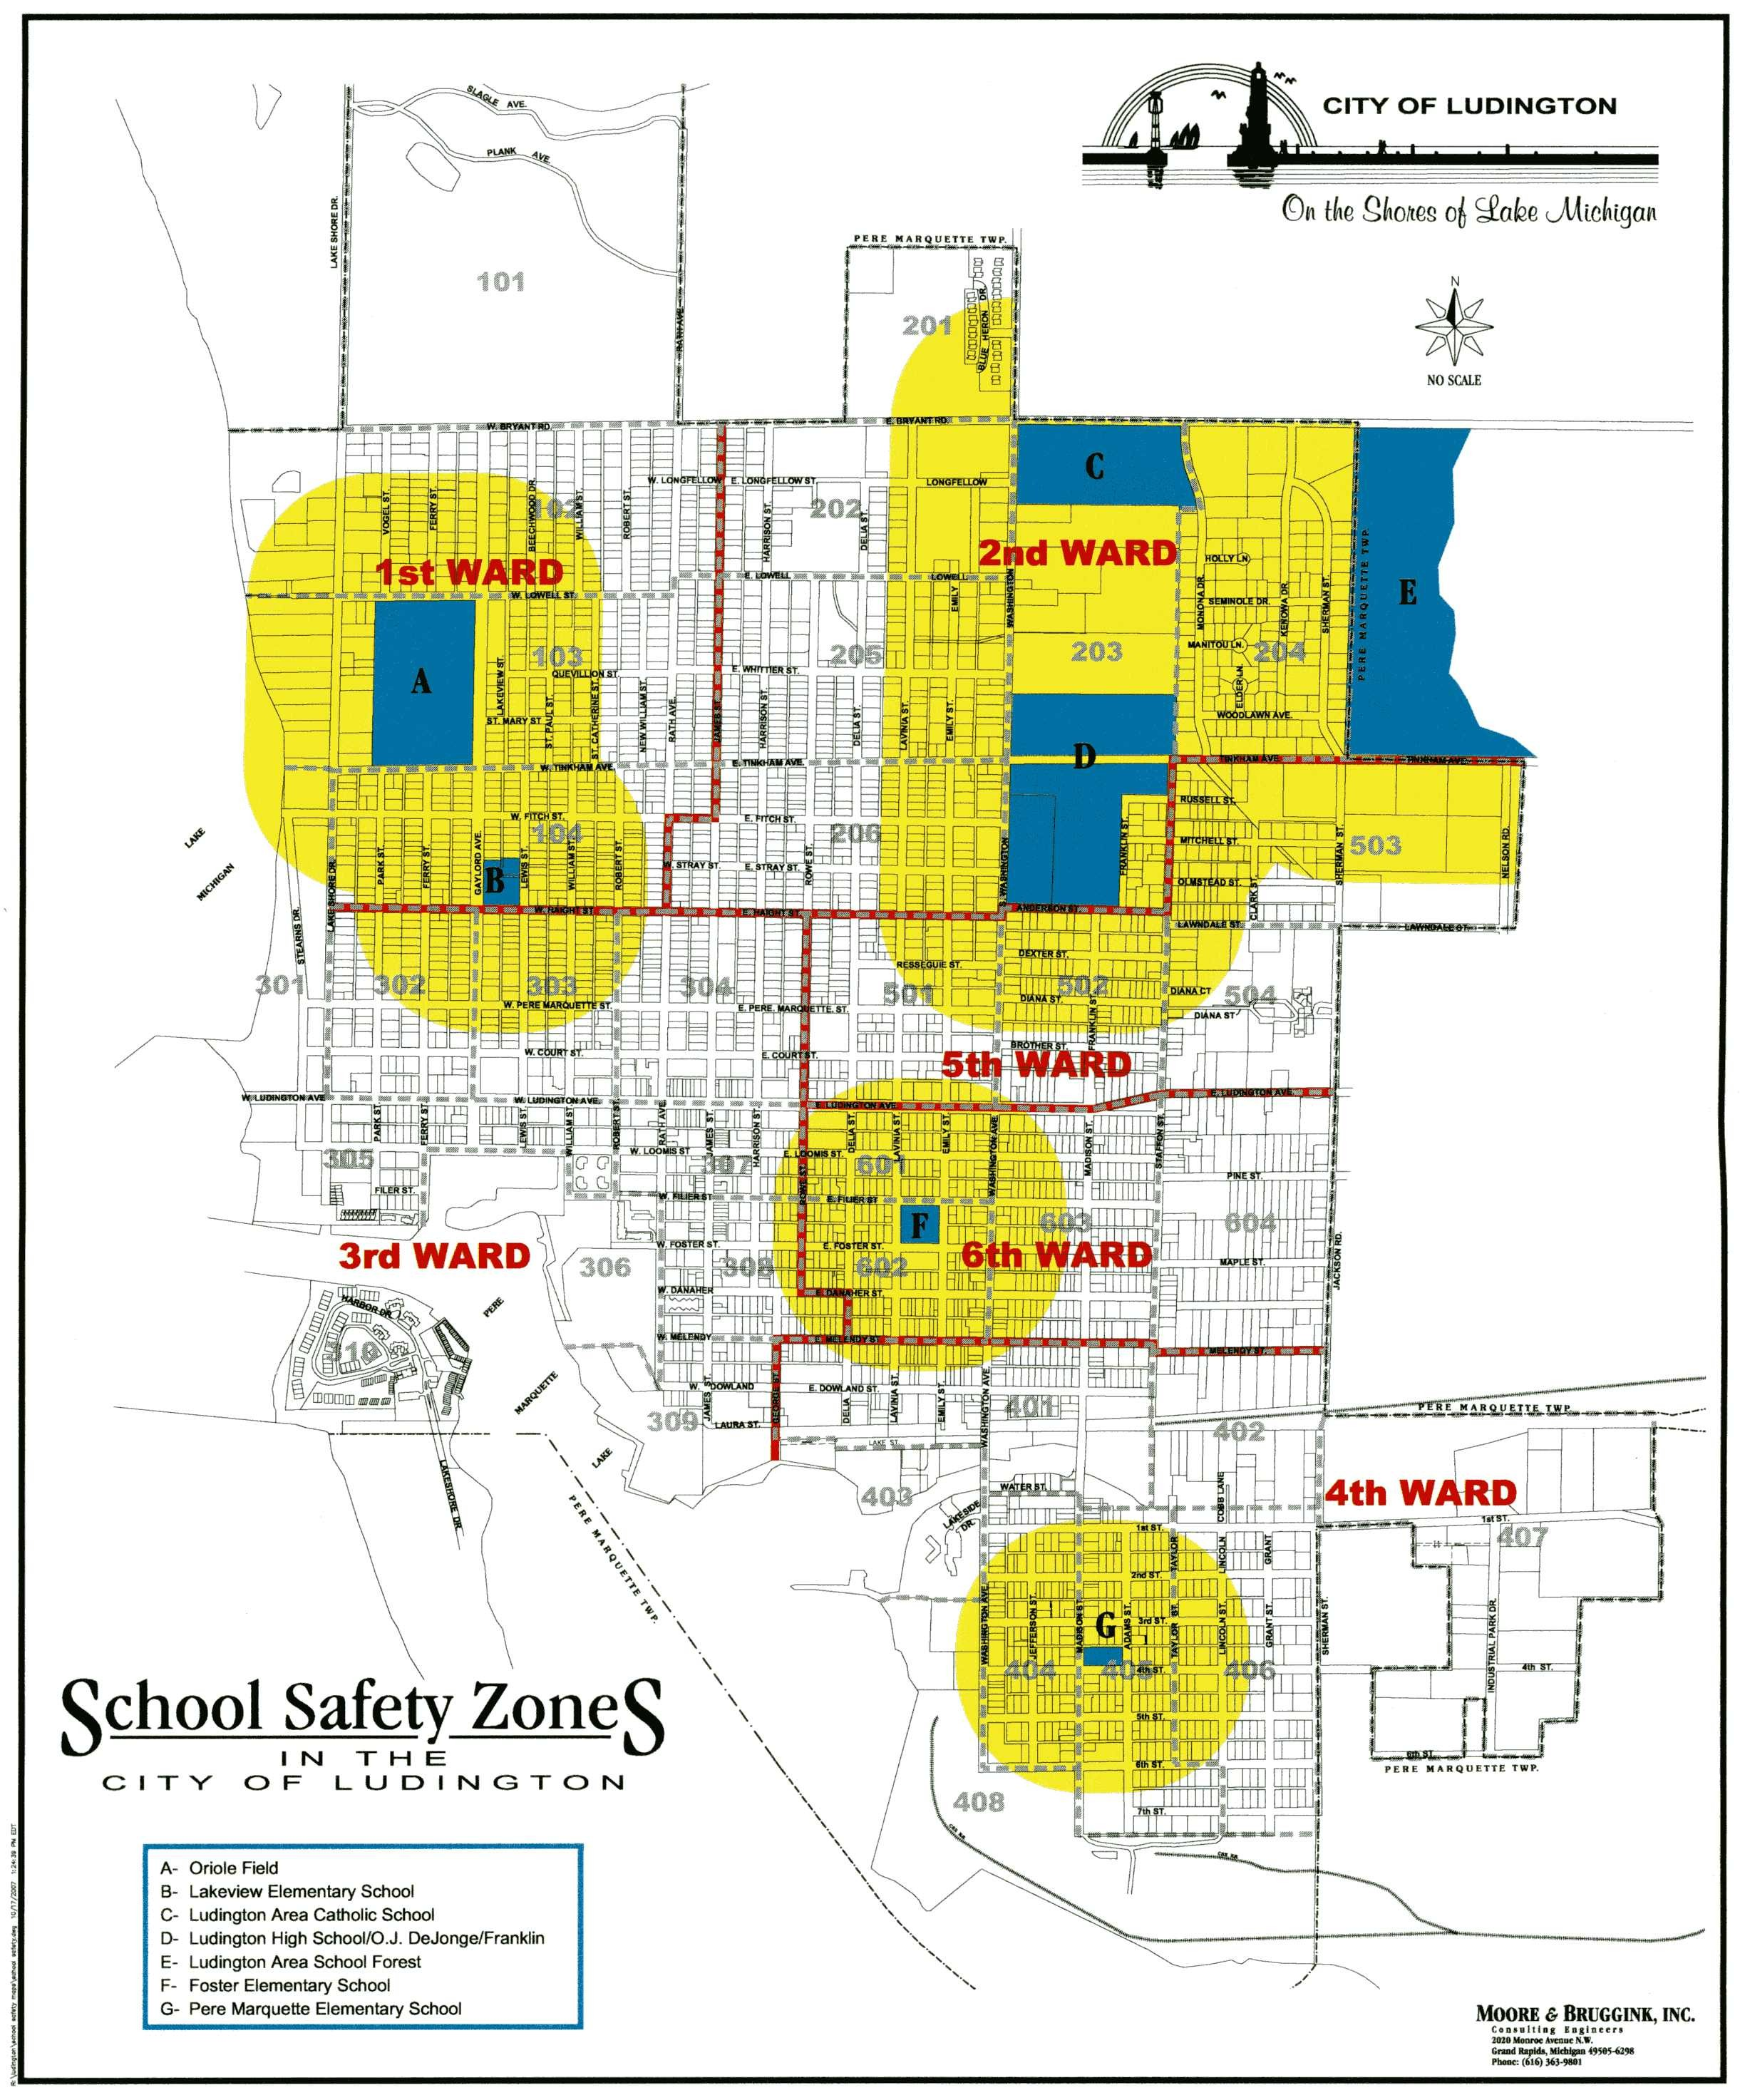 School Safety Zone Map